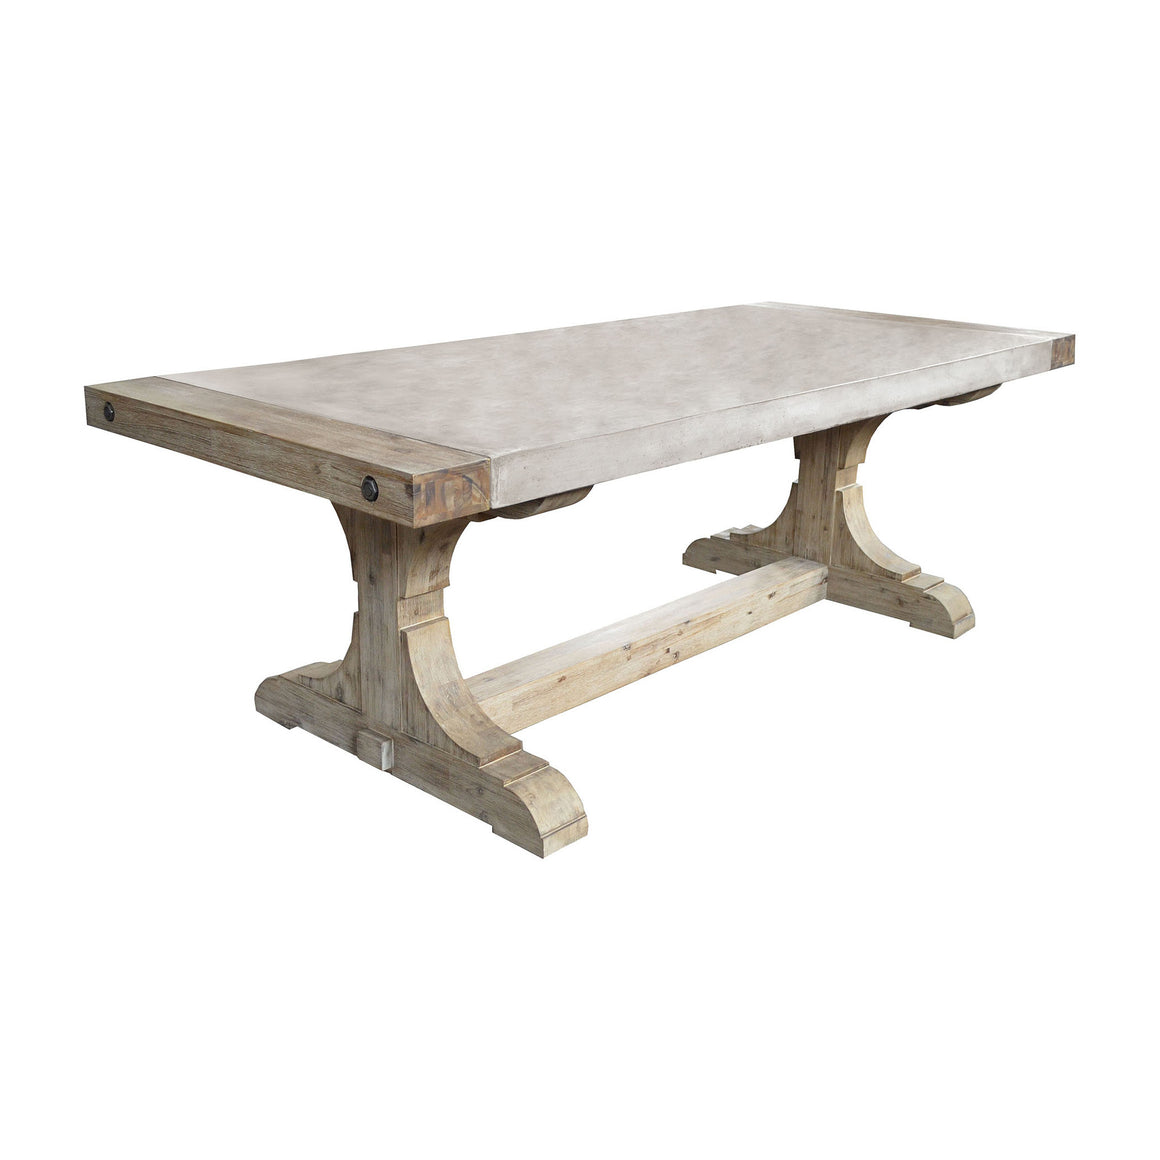 Dining Table - Pirate Dining Table